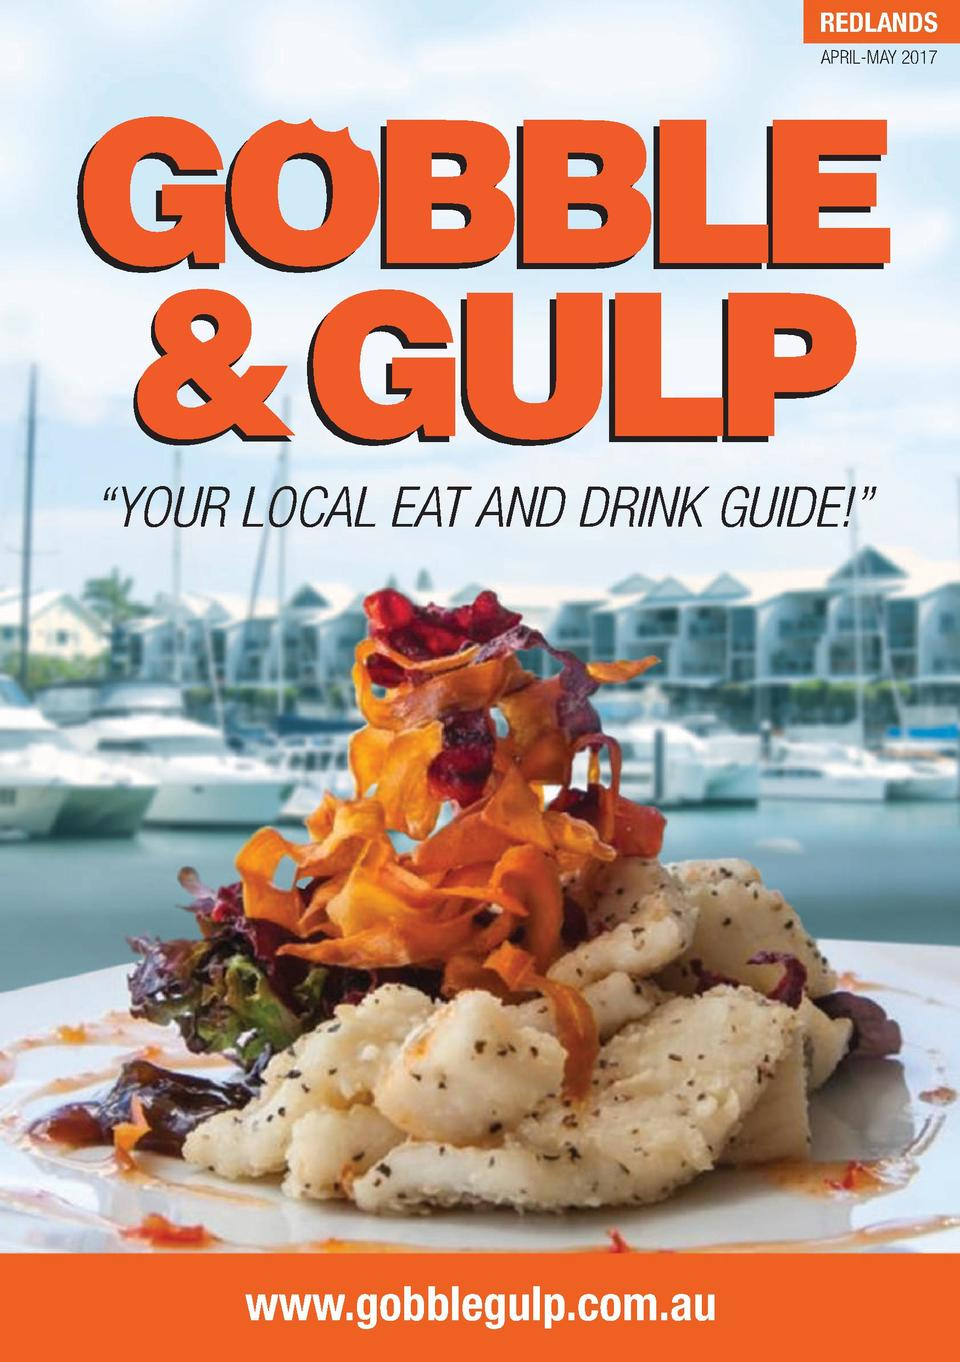 REDLANDS APRIL-MAY 2017        YOUR LOCAL EAT AND DRINK GUIDE      www.gobblegulp.com.au